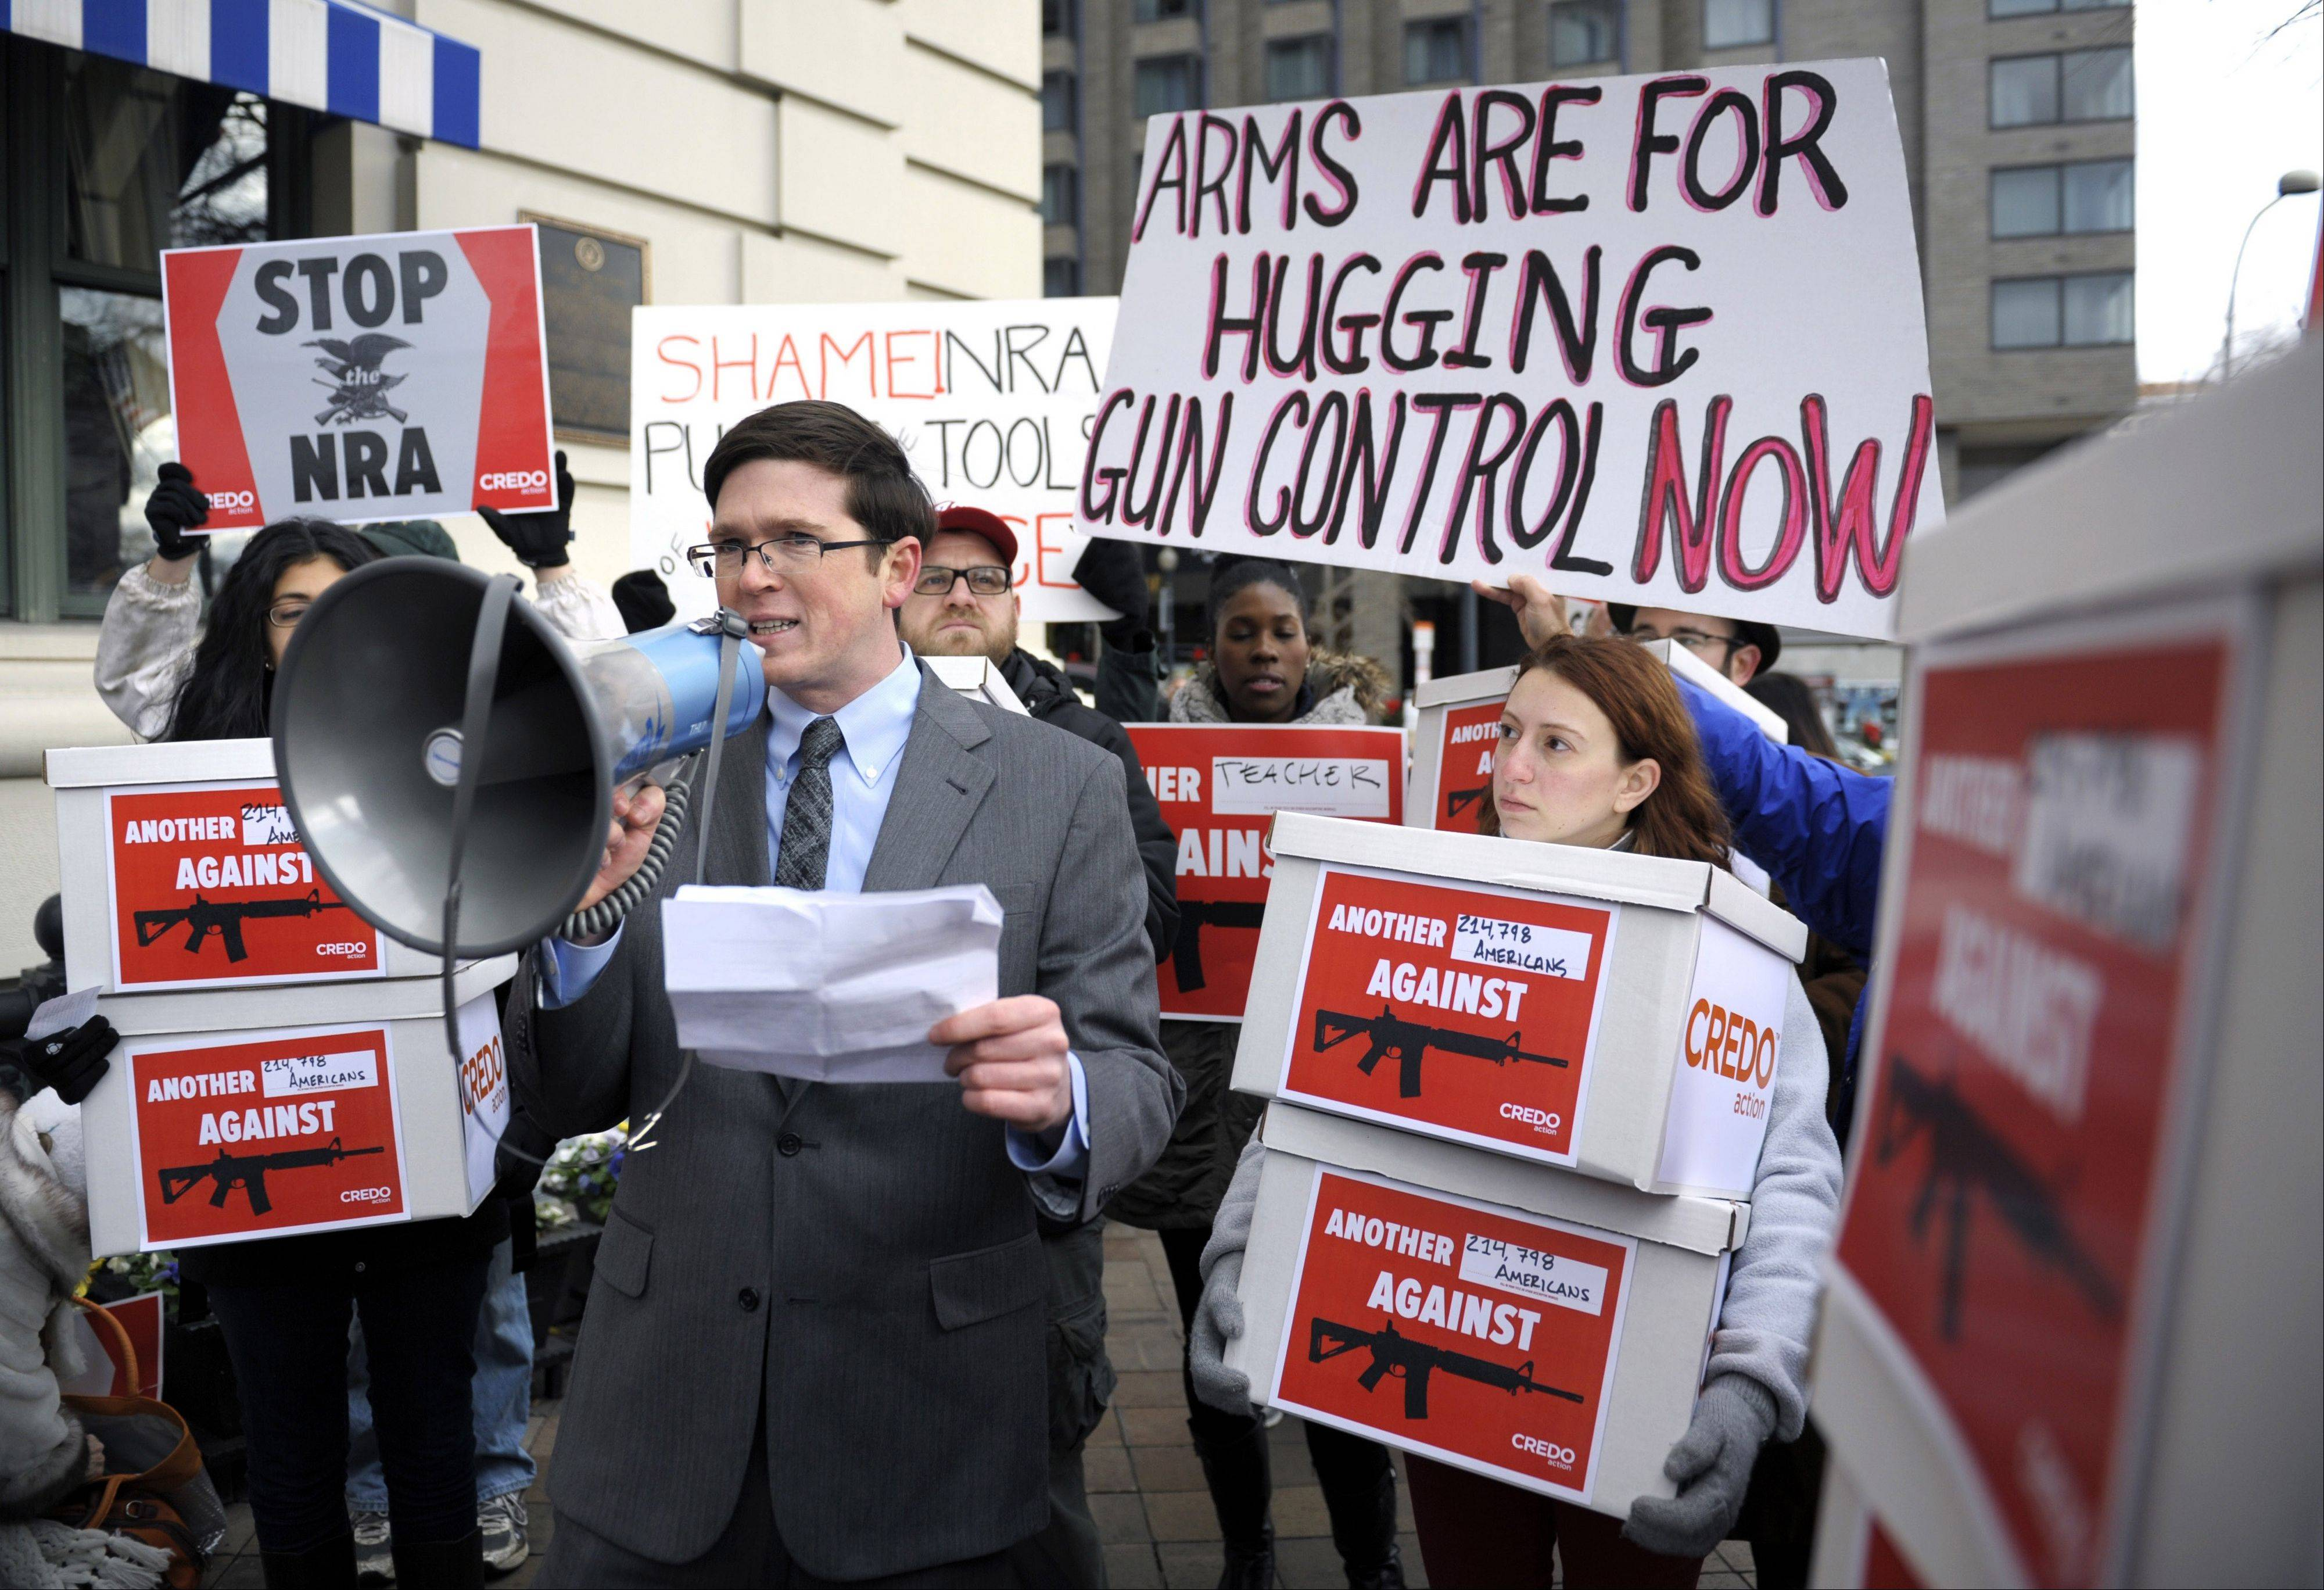 Josh Nelson, campaign manager, CREDO Mobile, speaks Dec. 21 after his group was denied entrance to a Washington hotel where they wanted to deliver a petition to the National Rifle Association calling for the NRA to get out of the way of gun control.